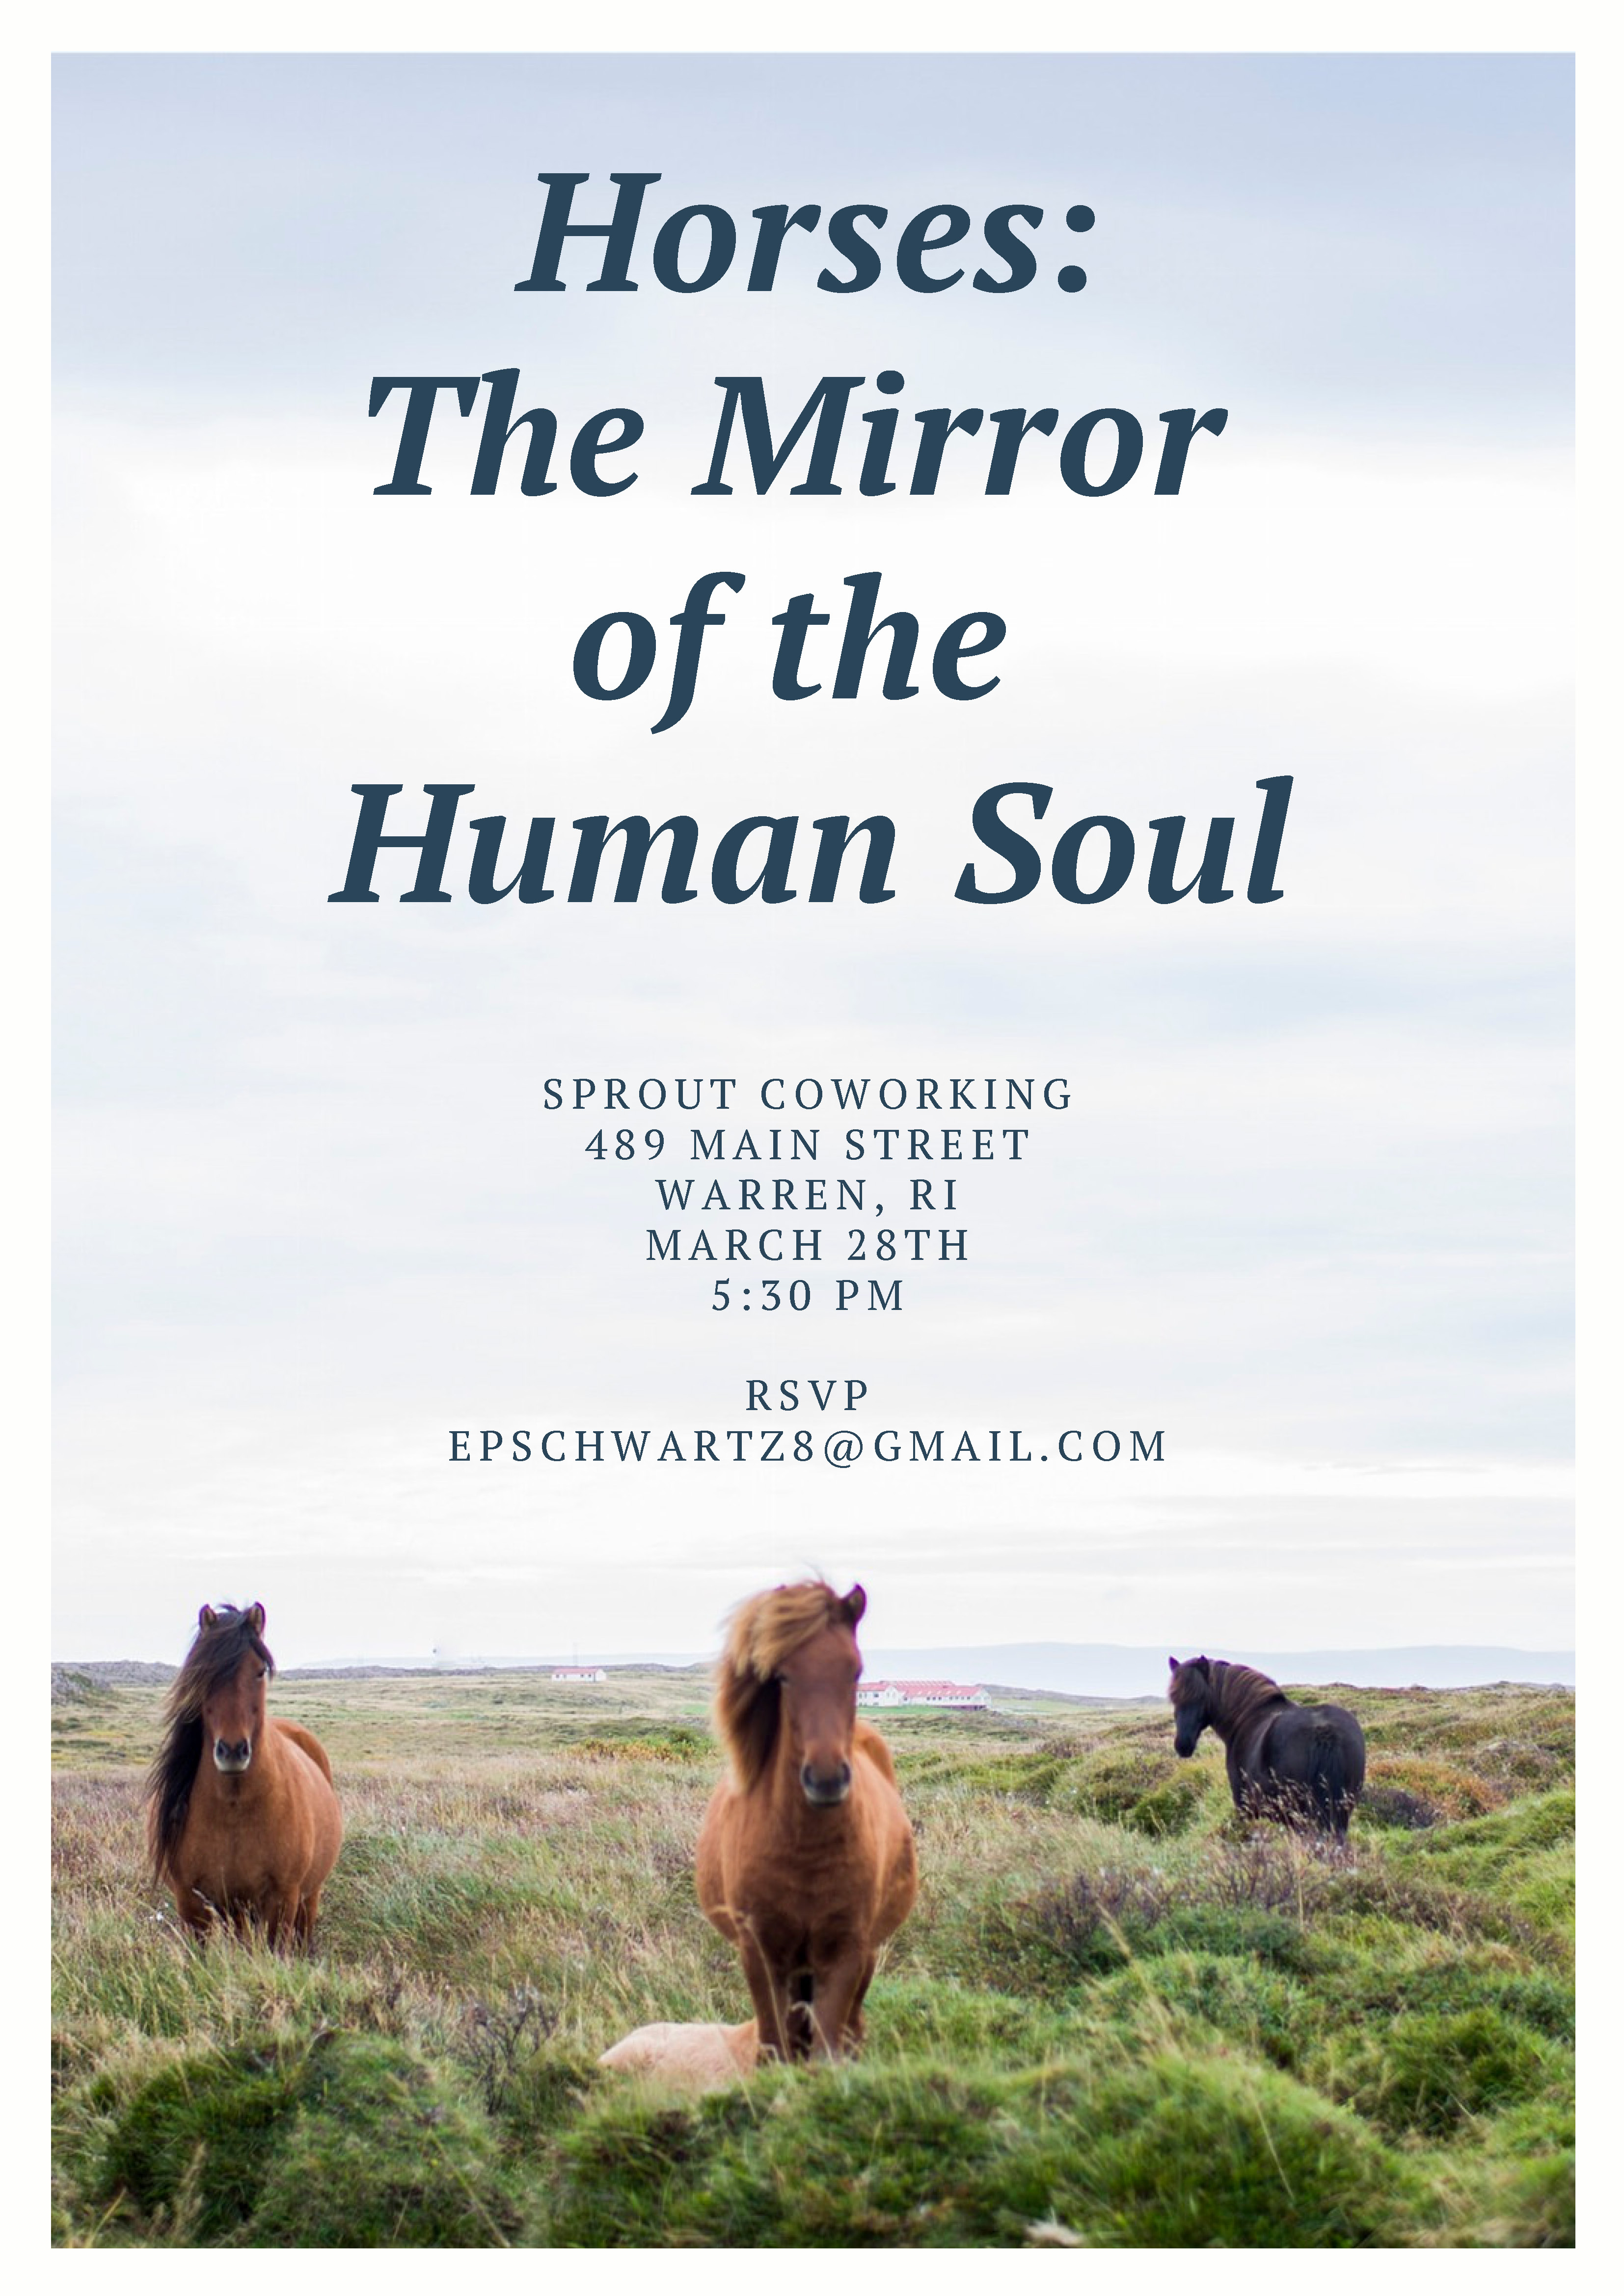 Horses: The Mirror of the Human Soul @ Sprout CoWorking Warren